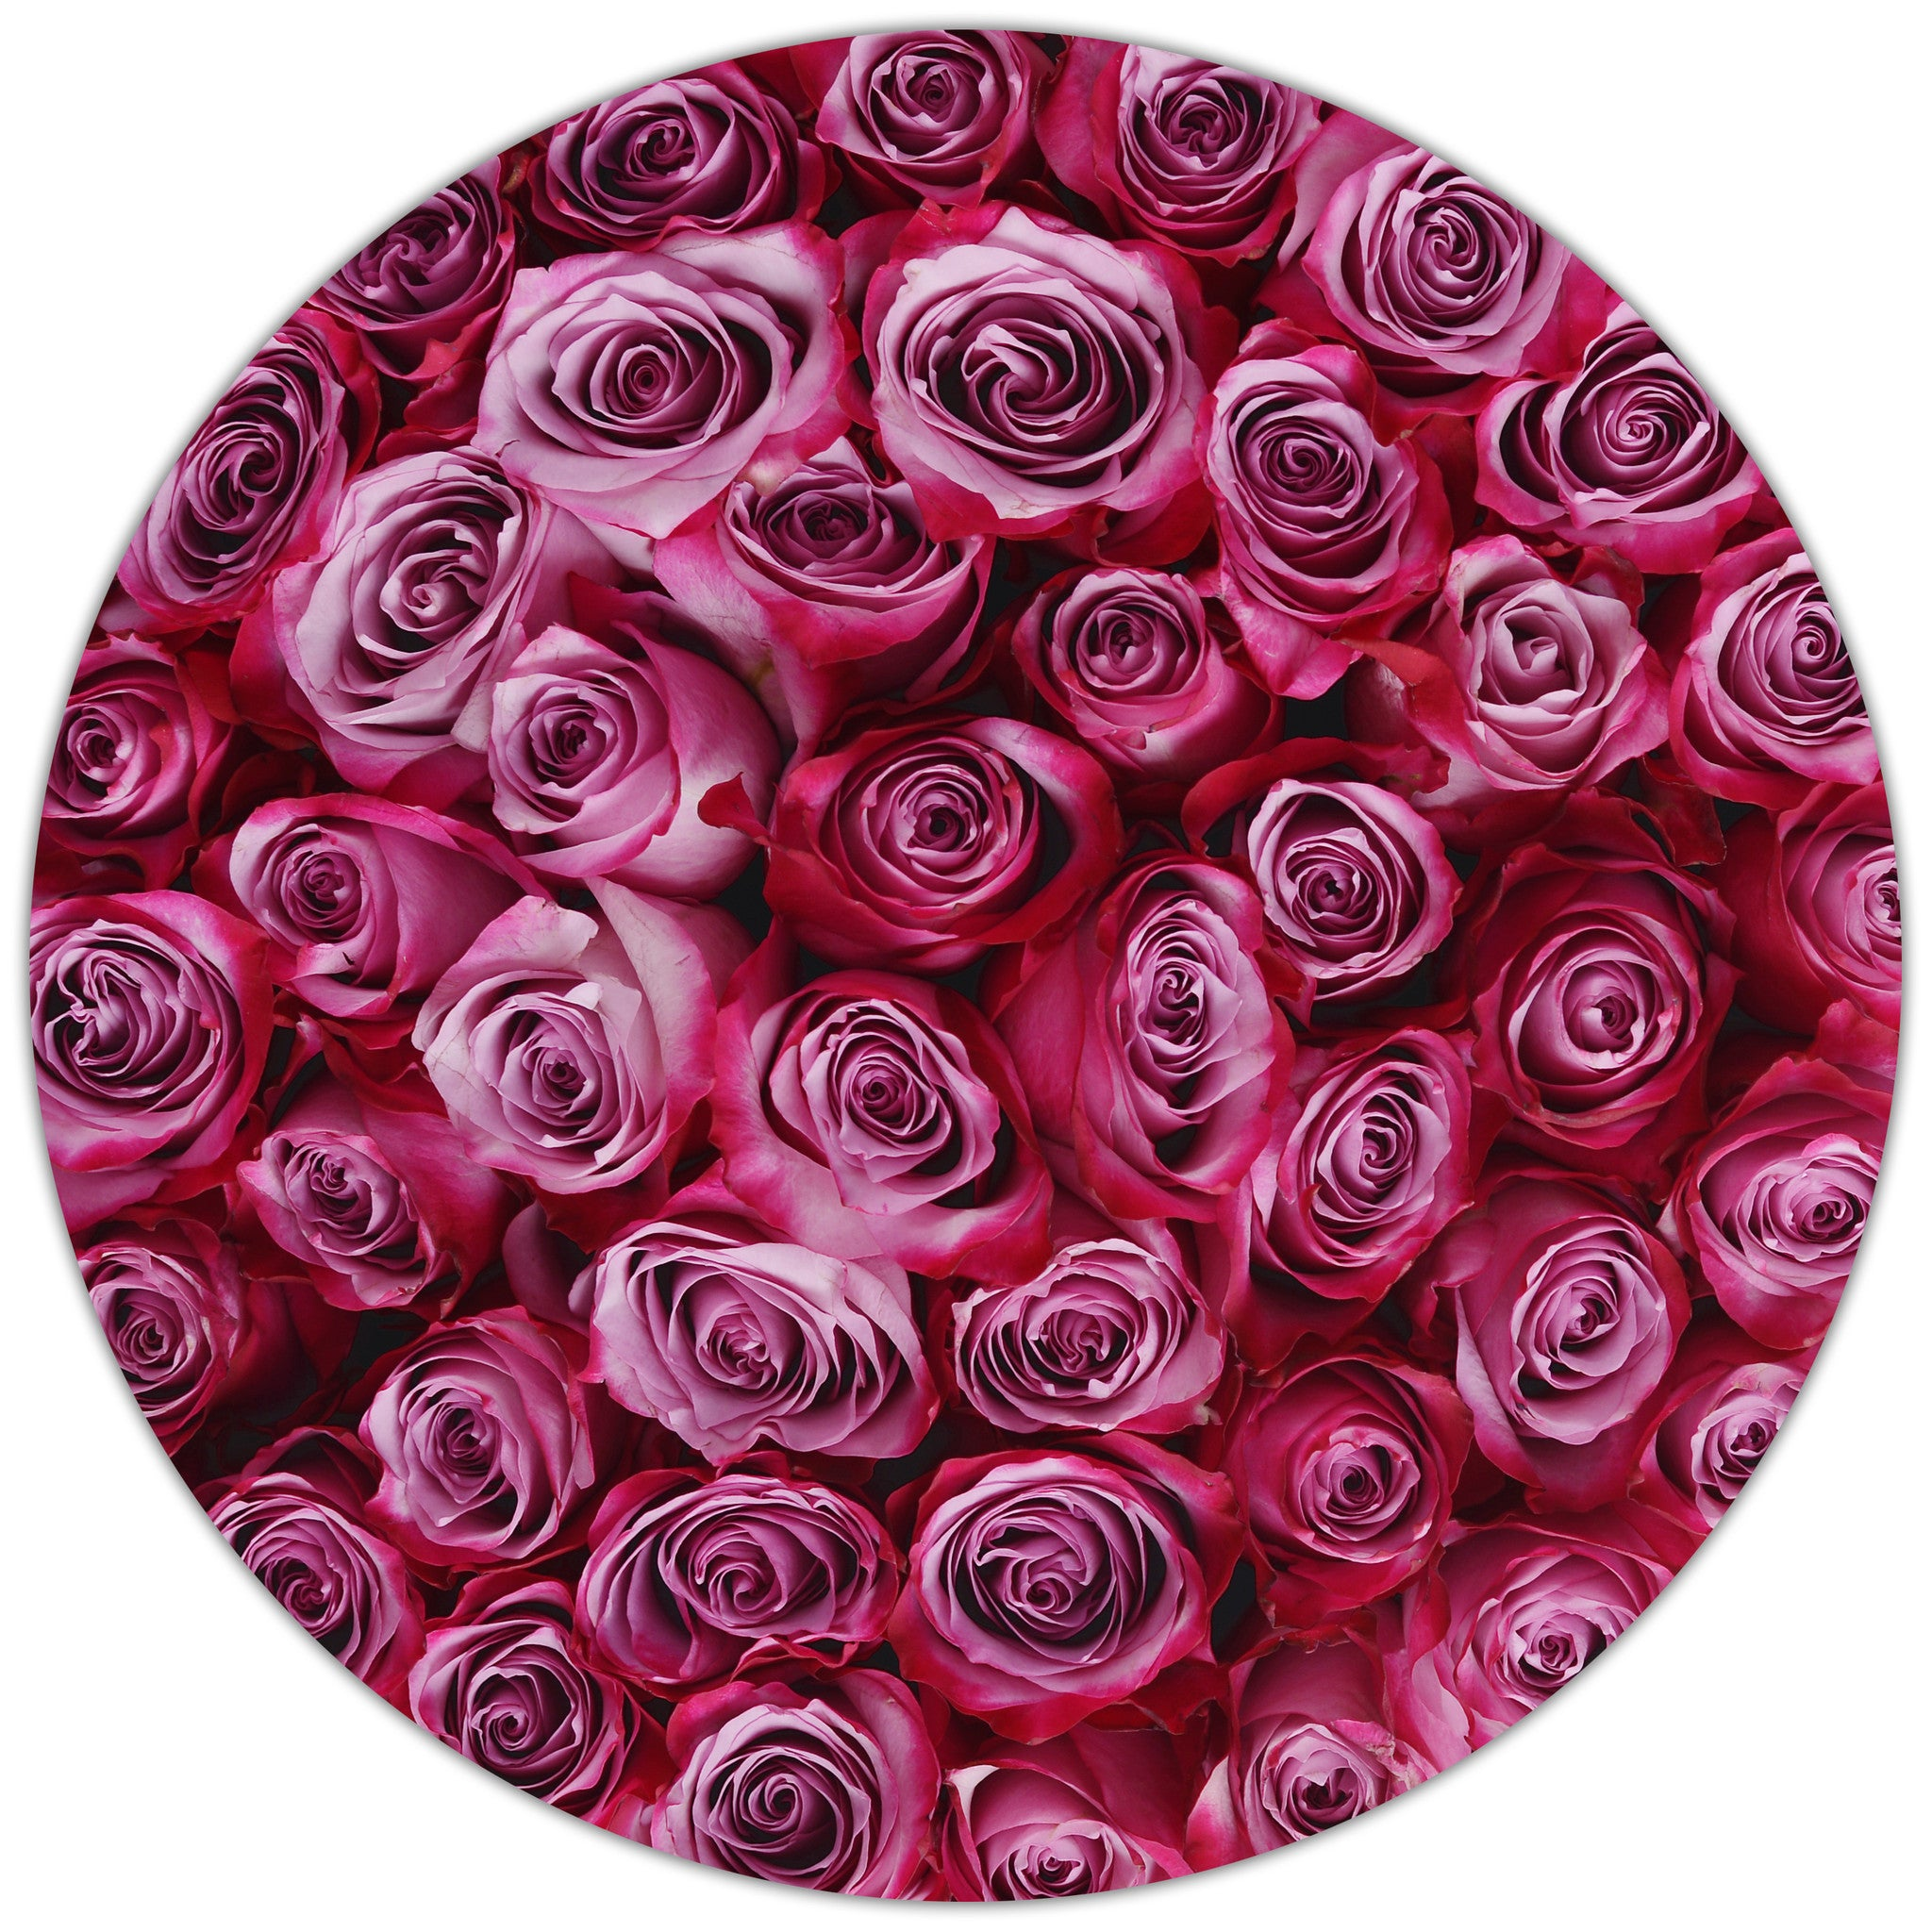 Medium - Deep Purple Roses - Grey Box - The Million Roses Budapest